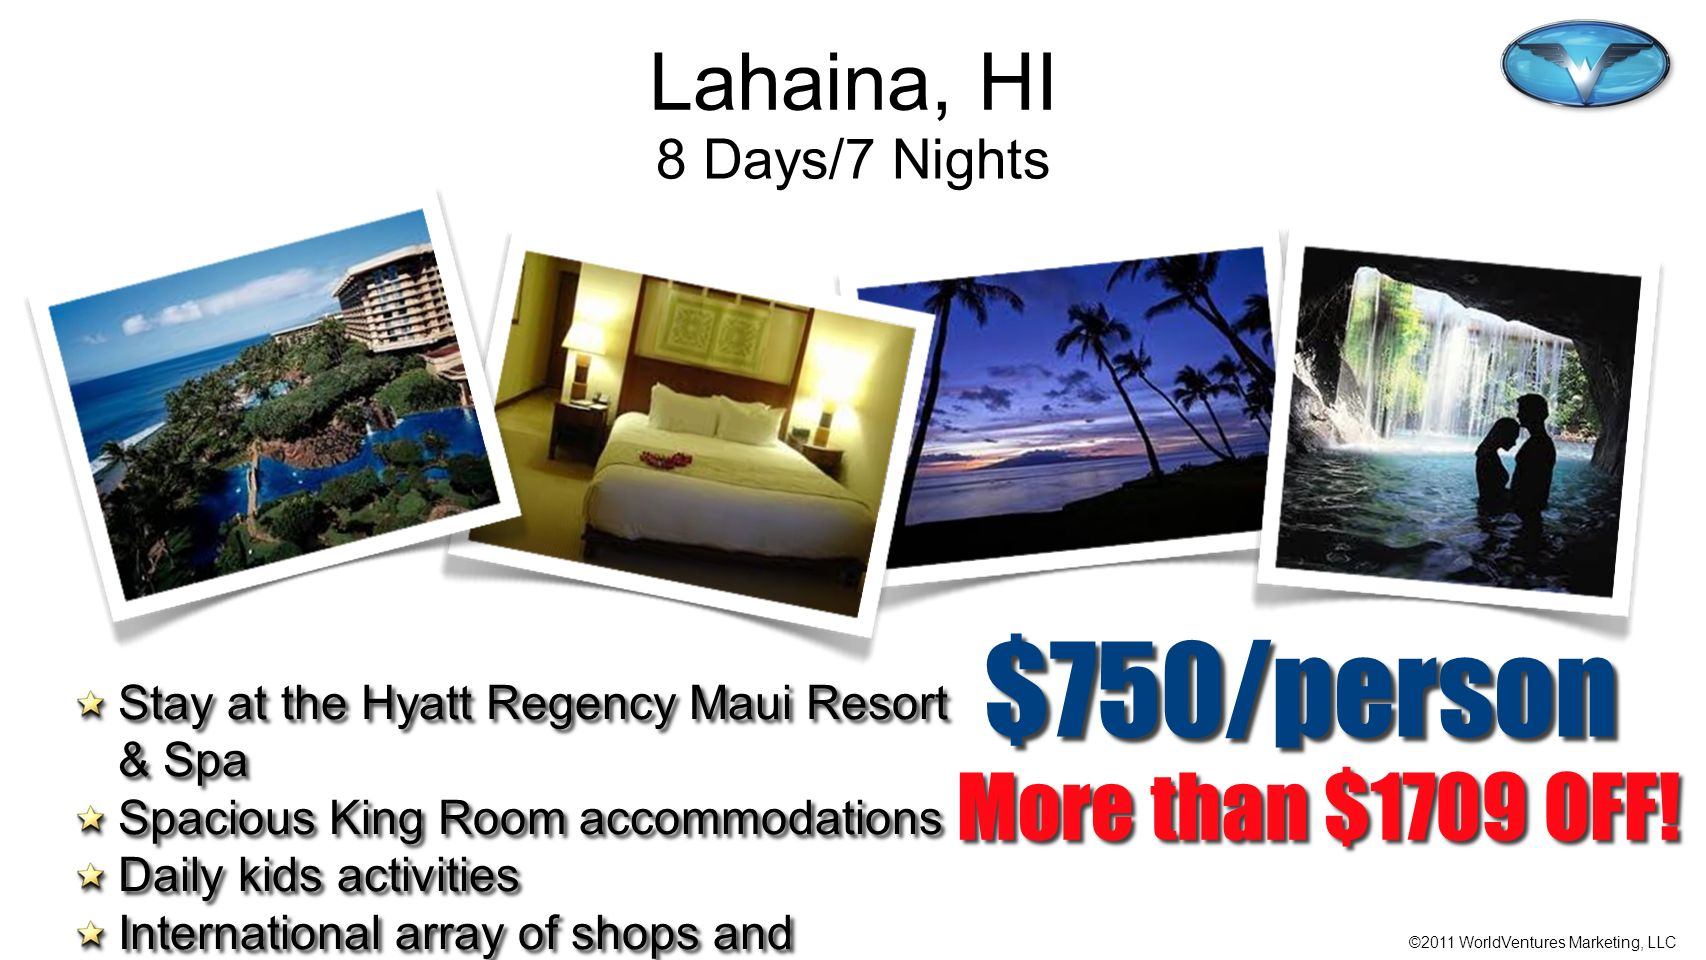 $750/person More than $1709 OFF! Lahaina, HI 8 Days/7 Nights